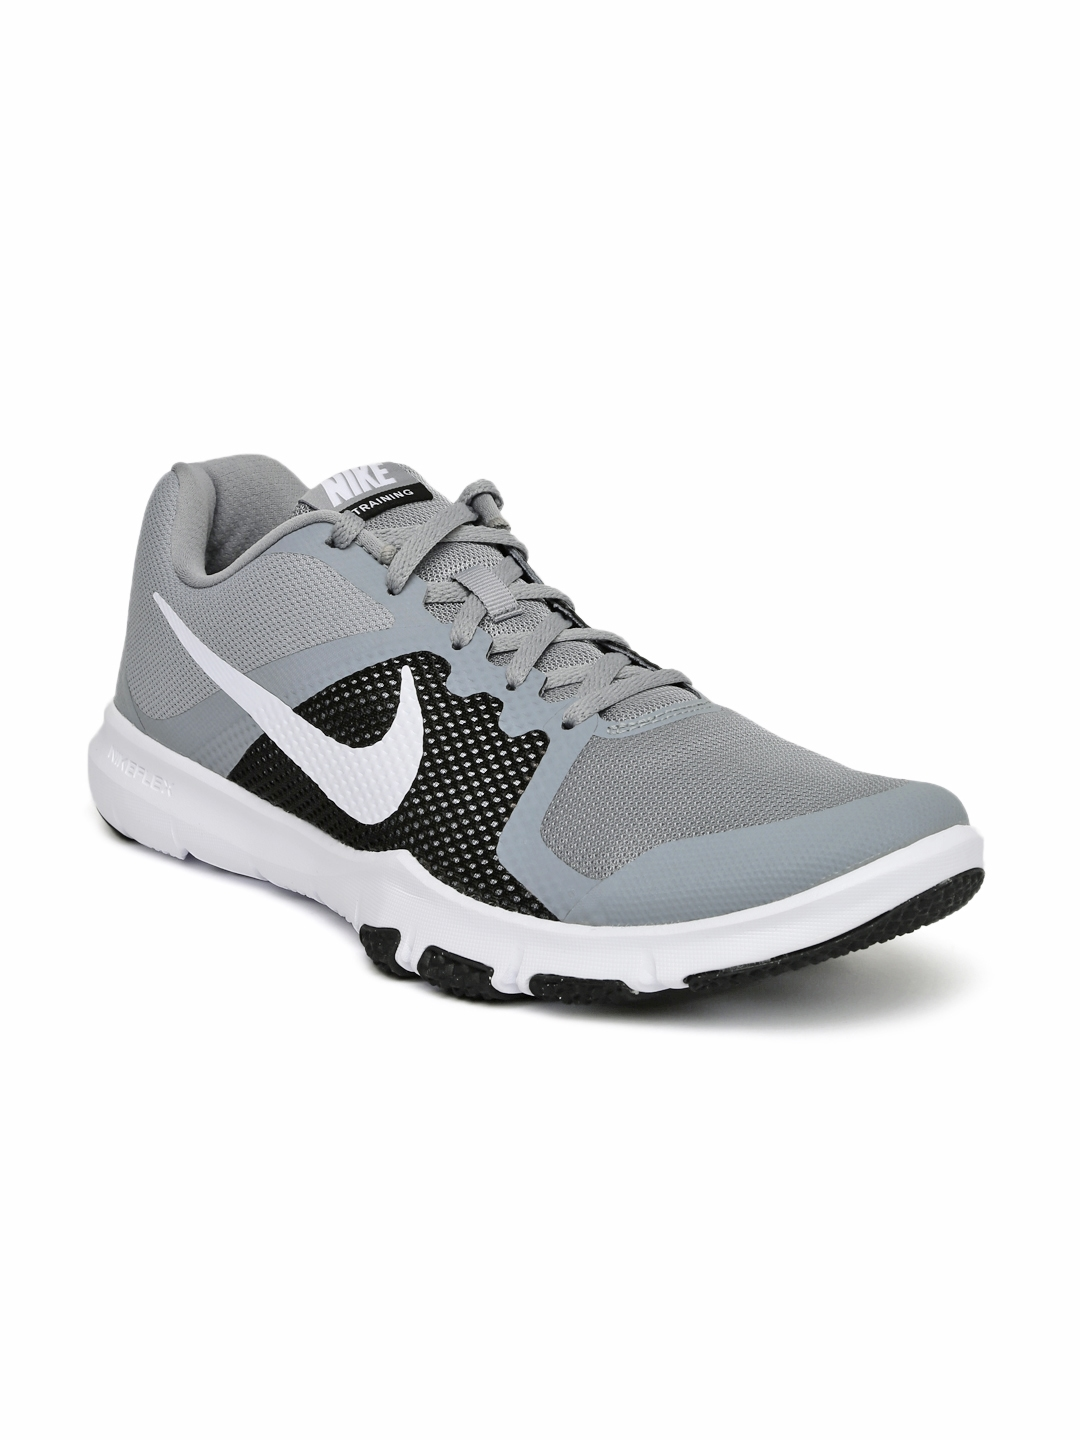 0ea78272fb30 Buy Nike Men Grey NIKE FLEX CONTROL Training Shoes - Sports Shoes ...